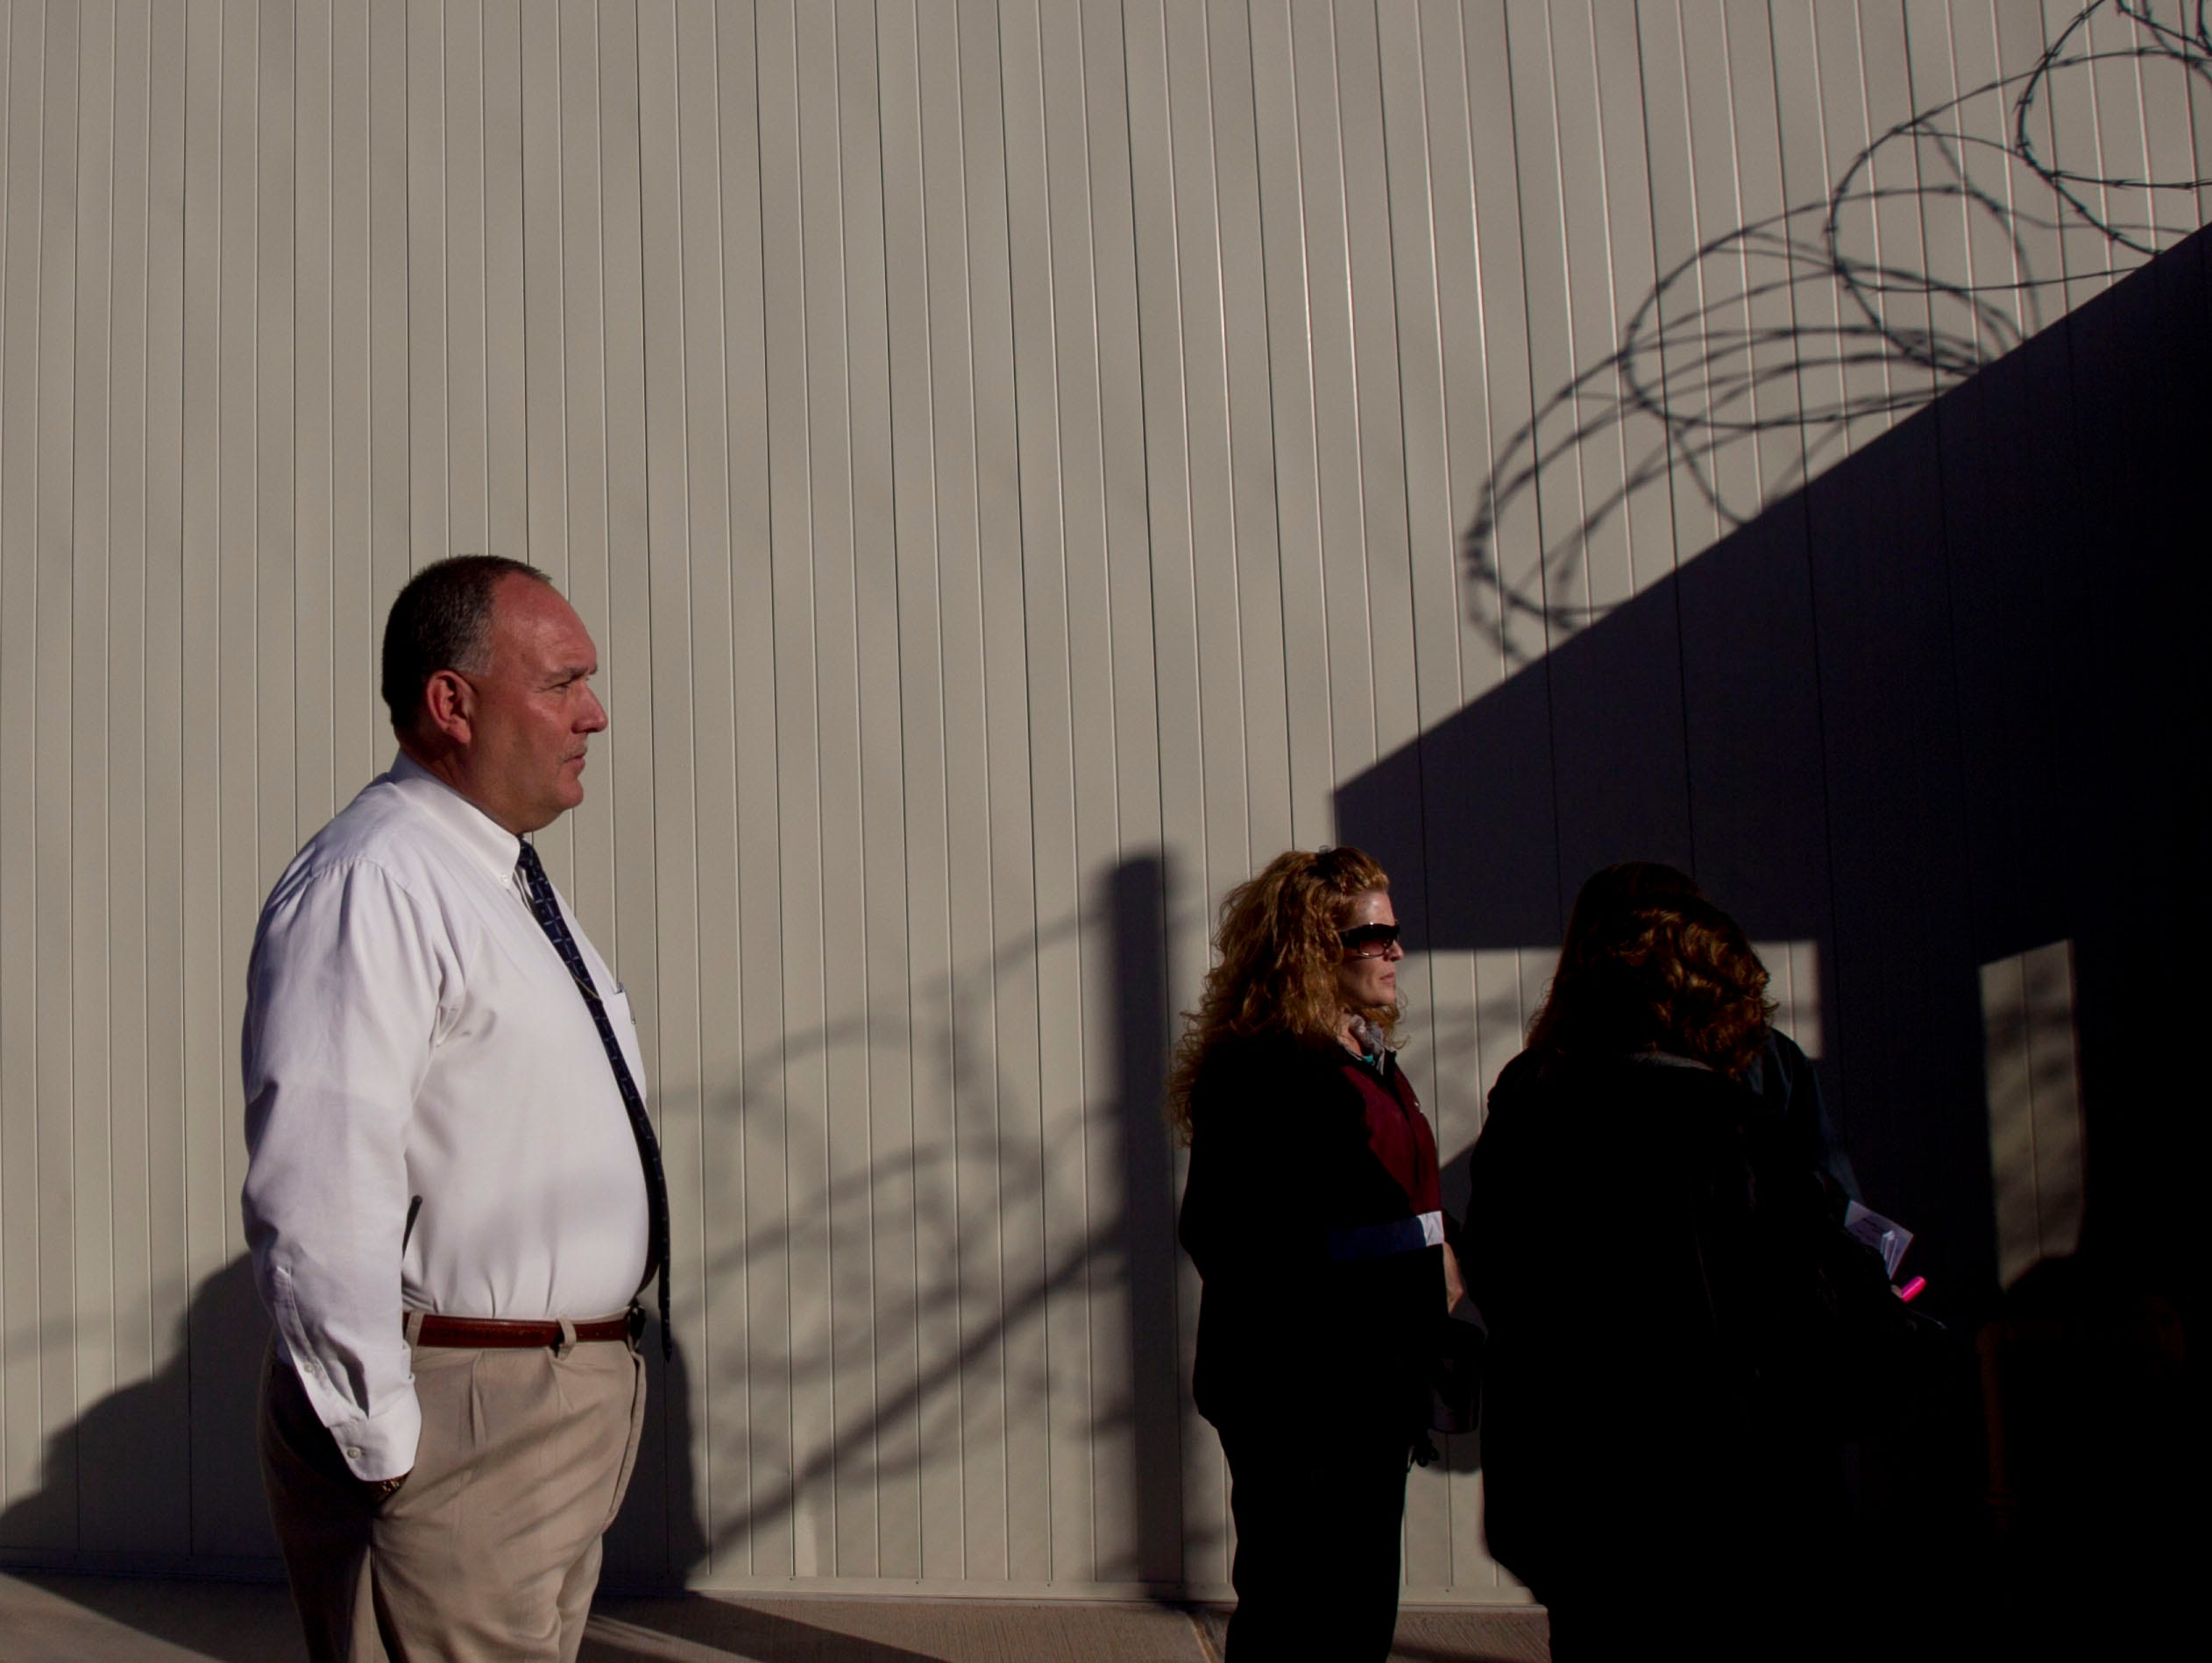 Warden Todd Thomas of Saguaro Correctional Center in Eloy watches the  rituals and prayers of Hawaiian inmates on Oct. 9, 2011.